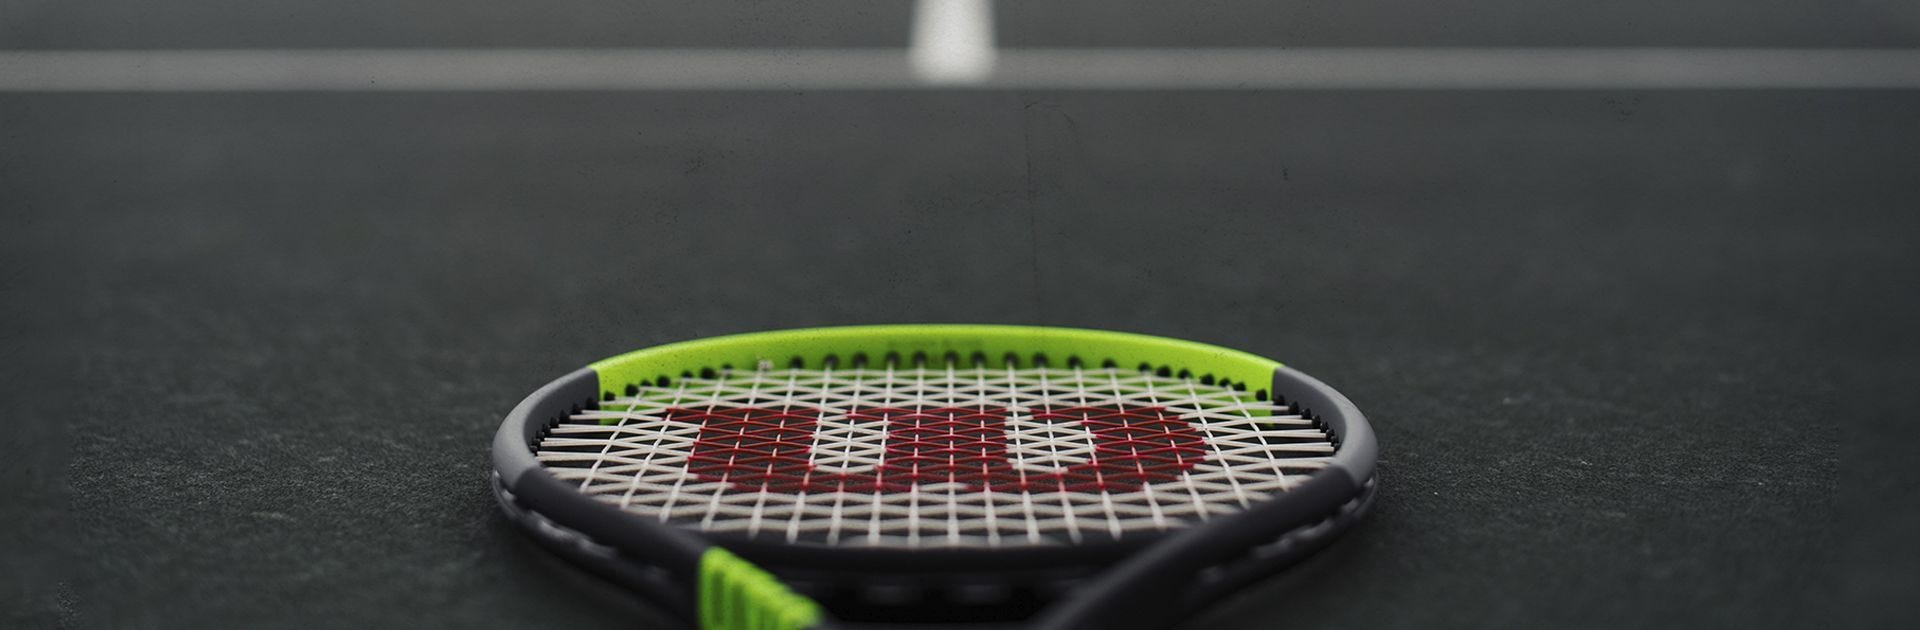 Blade Tennis Rackets | Wilson Sporting Goods